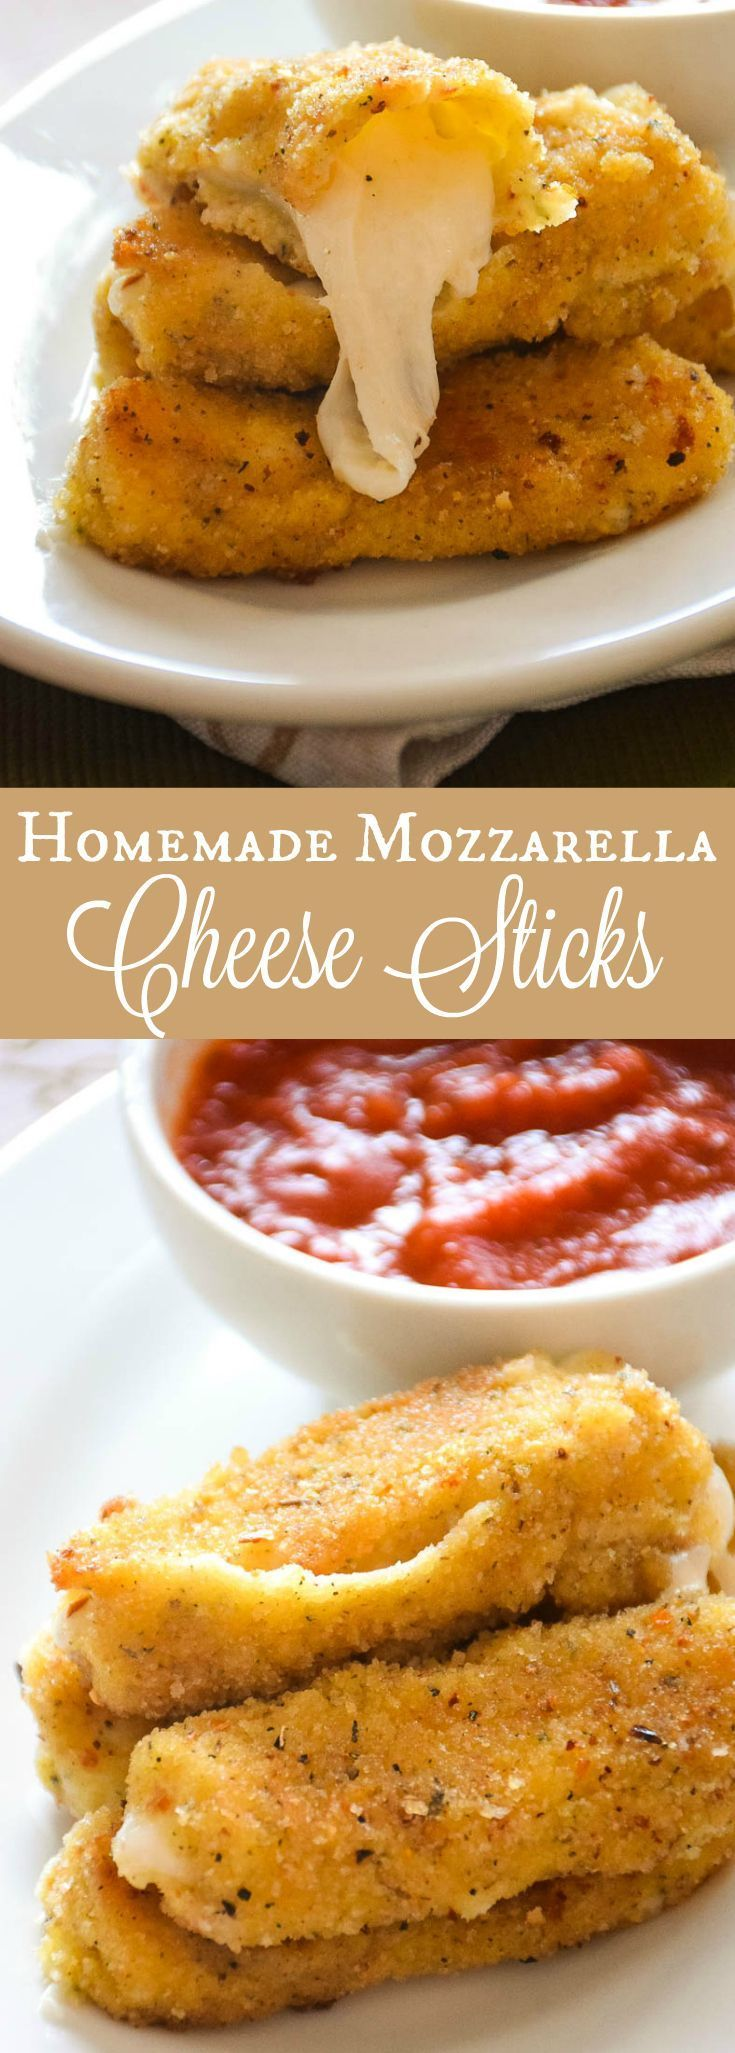 Homemade Mozzarella Cheese Sticks - Full of flavor, melty and stringy homemade mozzarella cheese sticks are an easy appetizer treat to make right at home for your family or guests. #SundaySupper